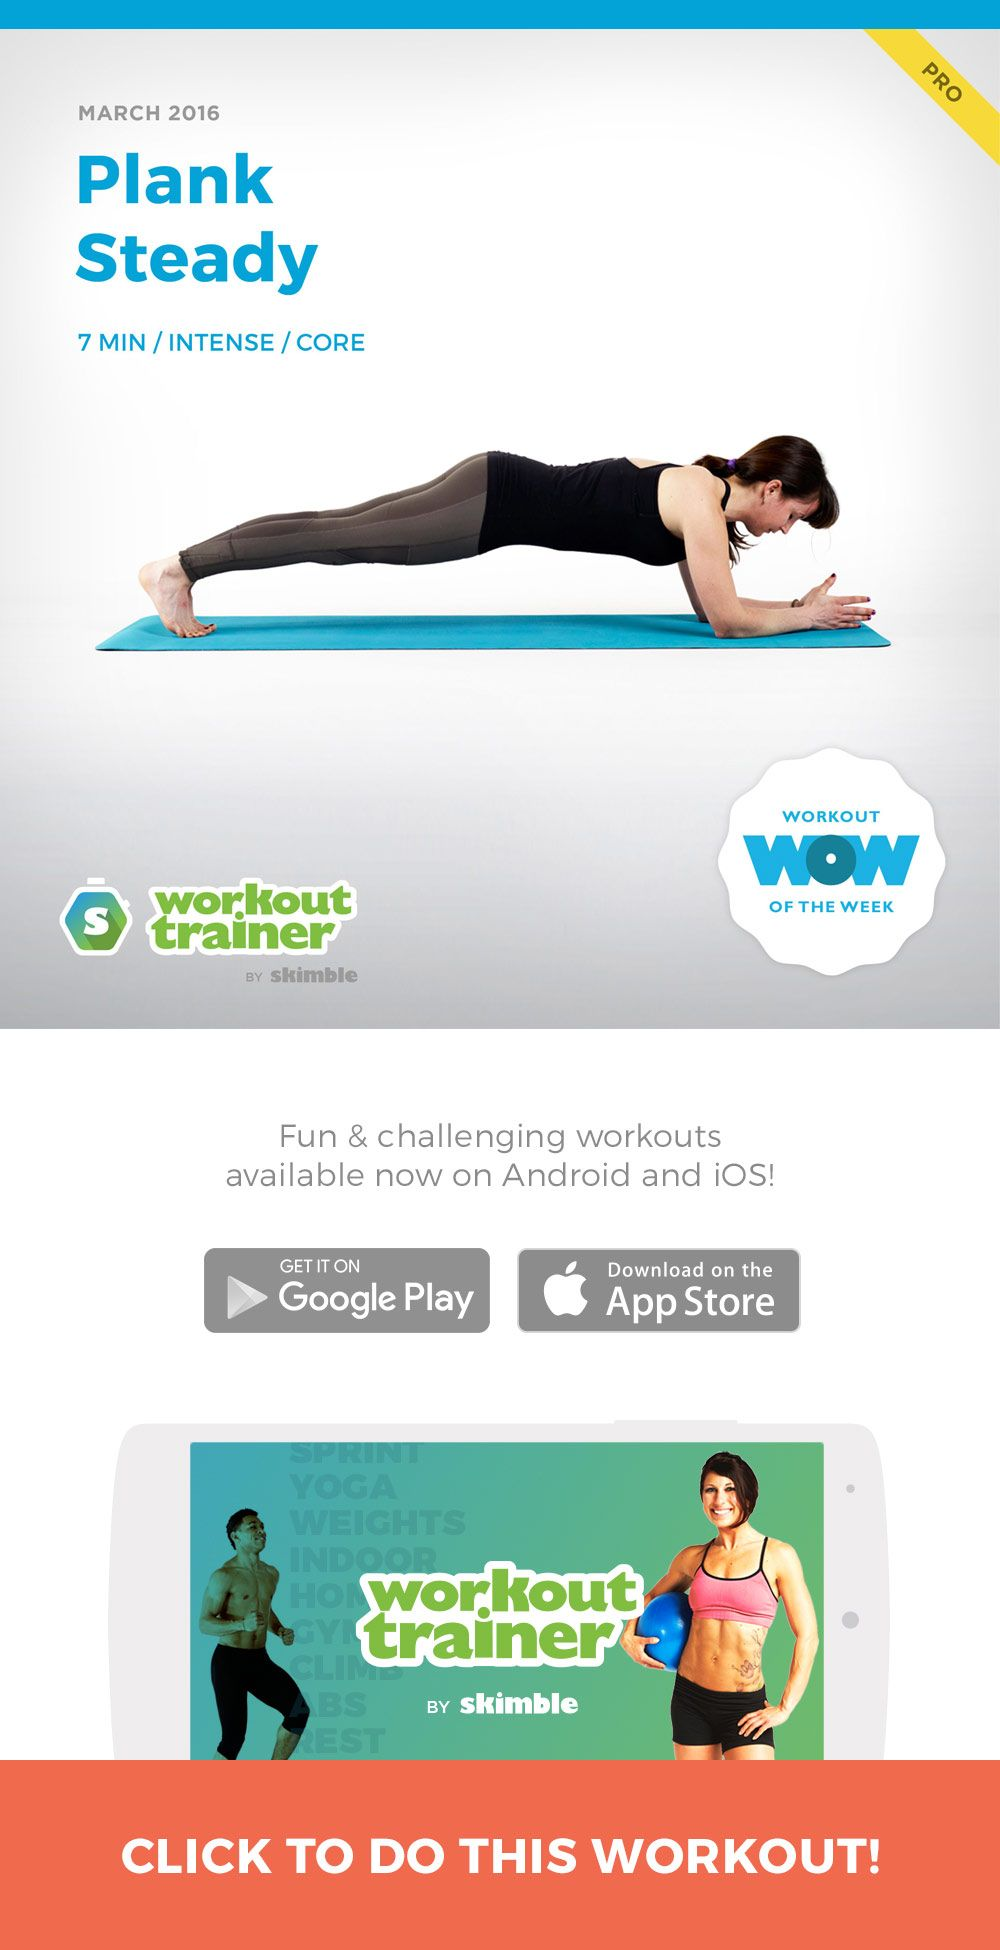 Plank Steady Workout trainer app, Weights workout, Workout